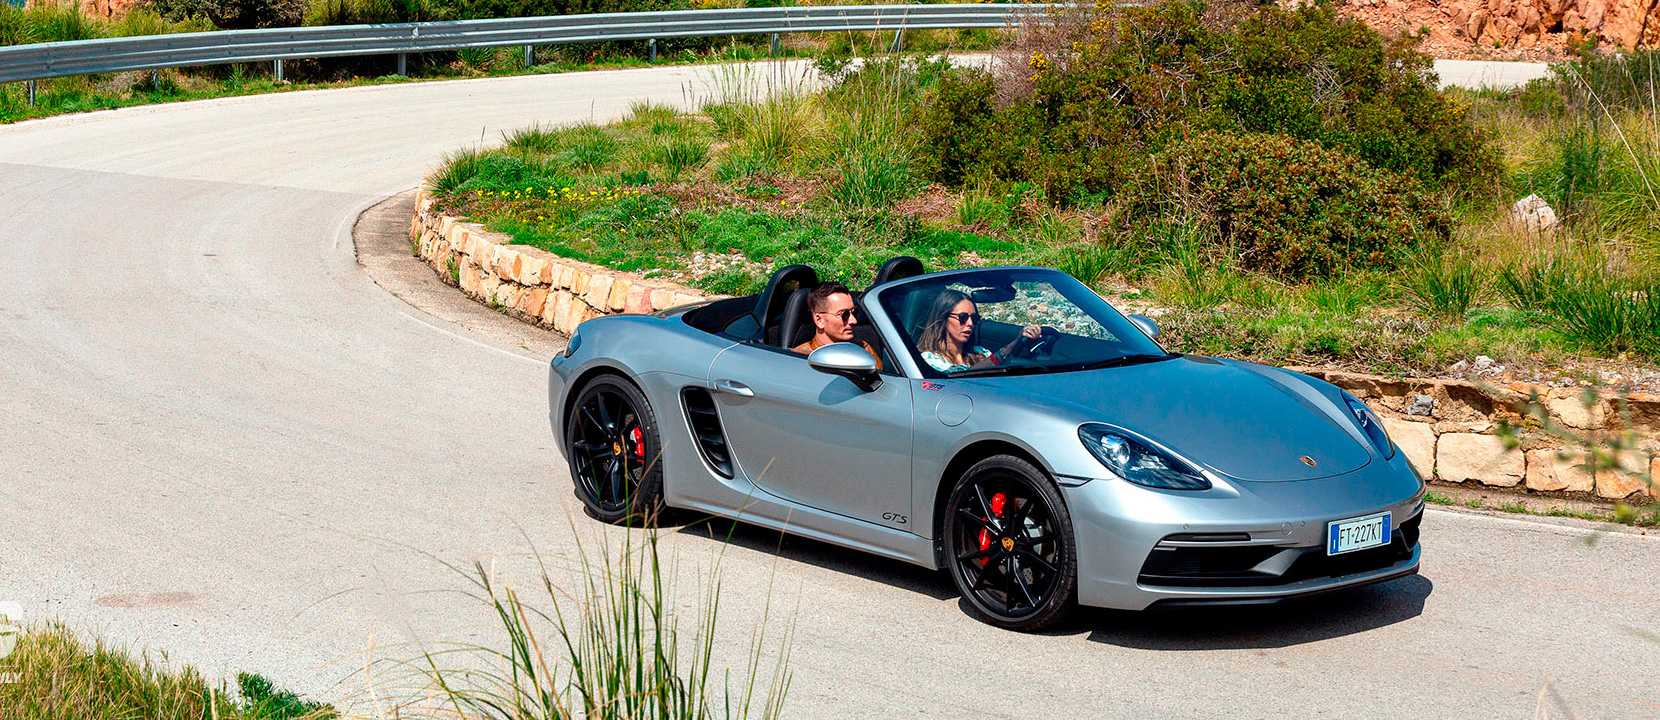 3 Day Self drive Porsche Ragusa Tour, Sicily / Italy - June, July, Sept